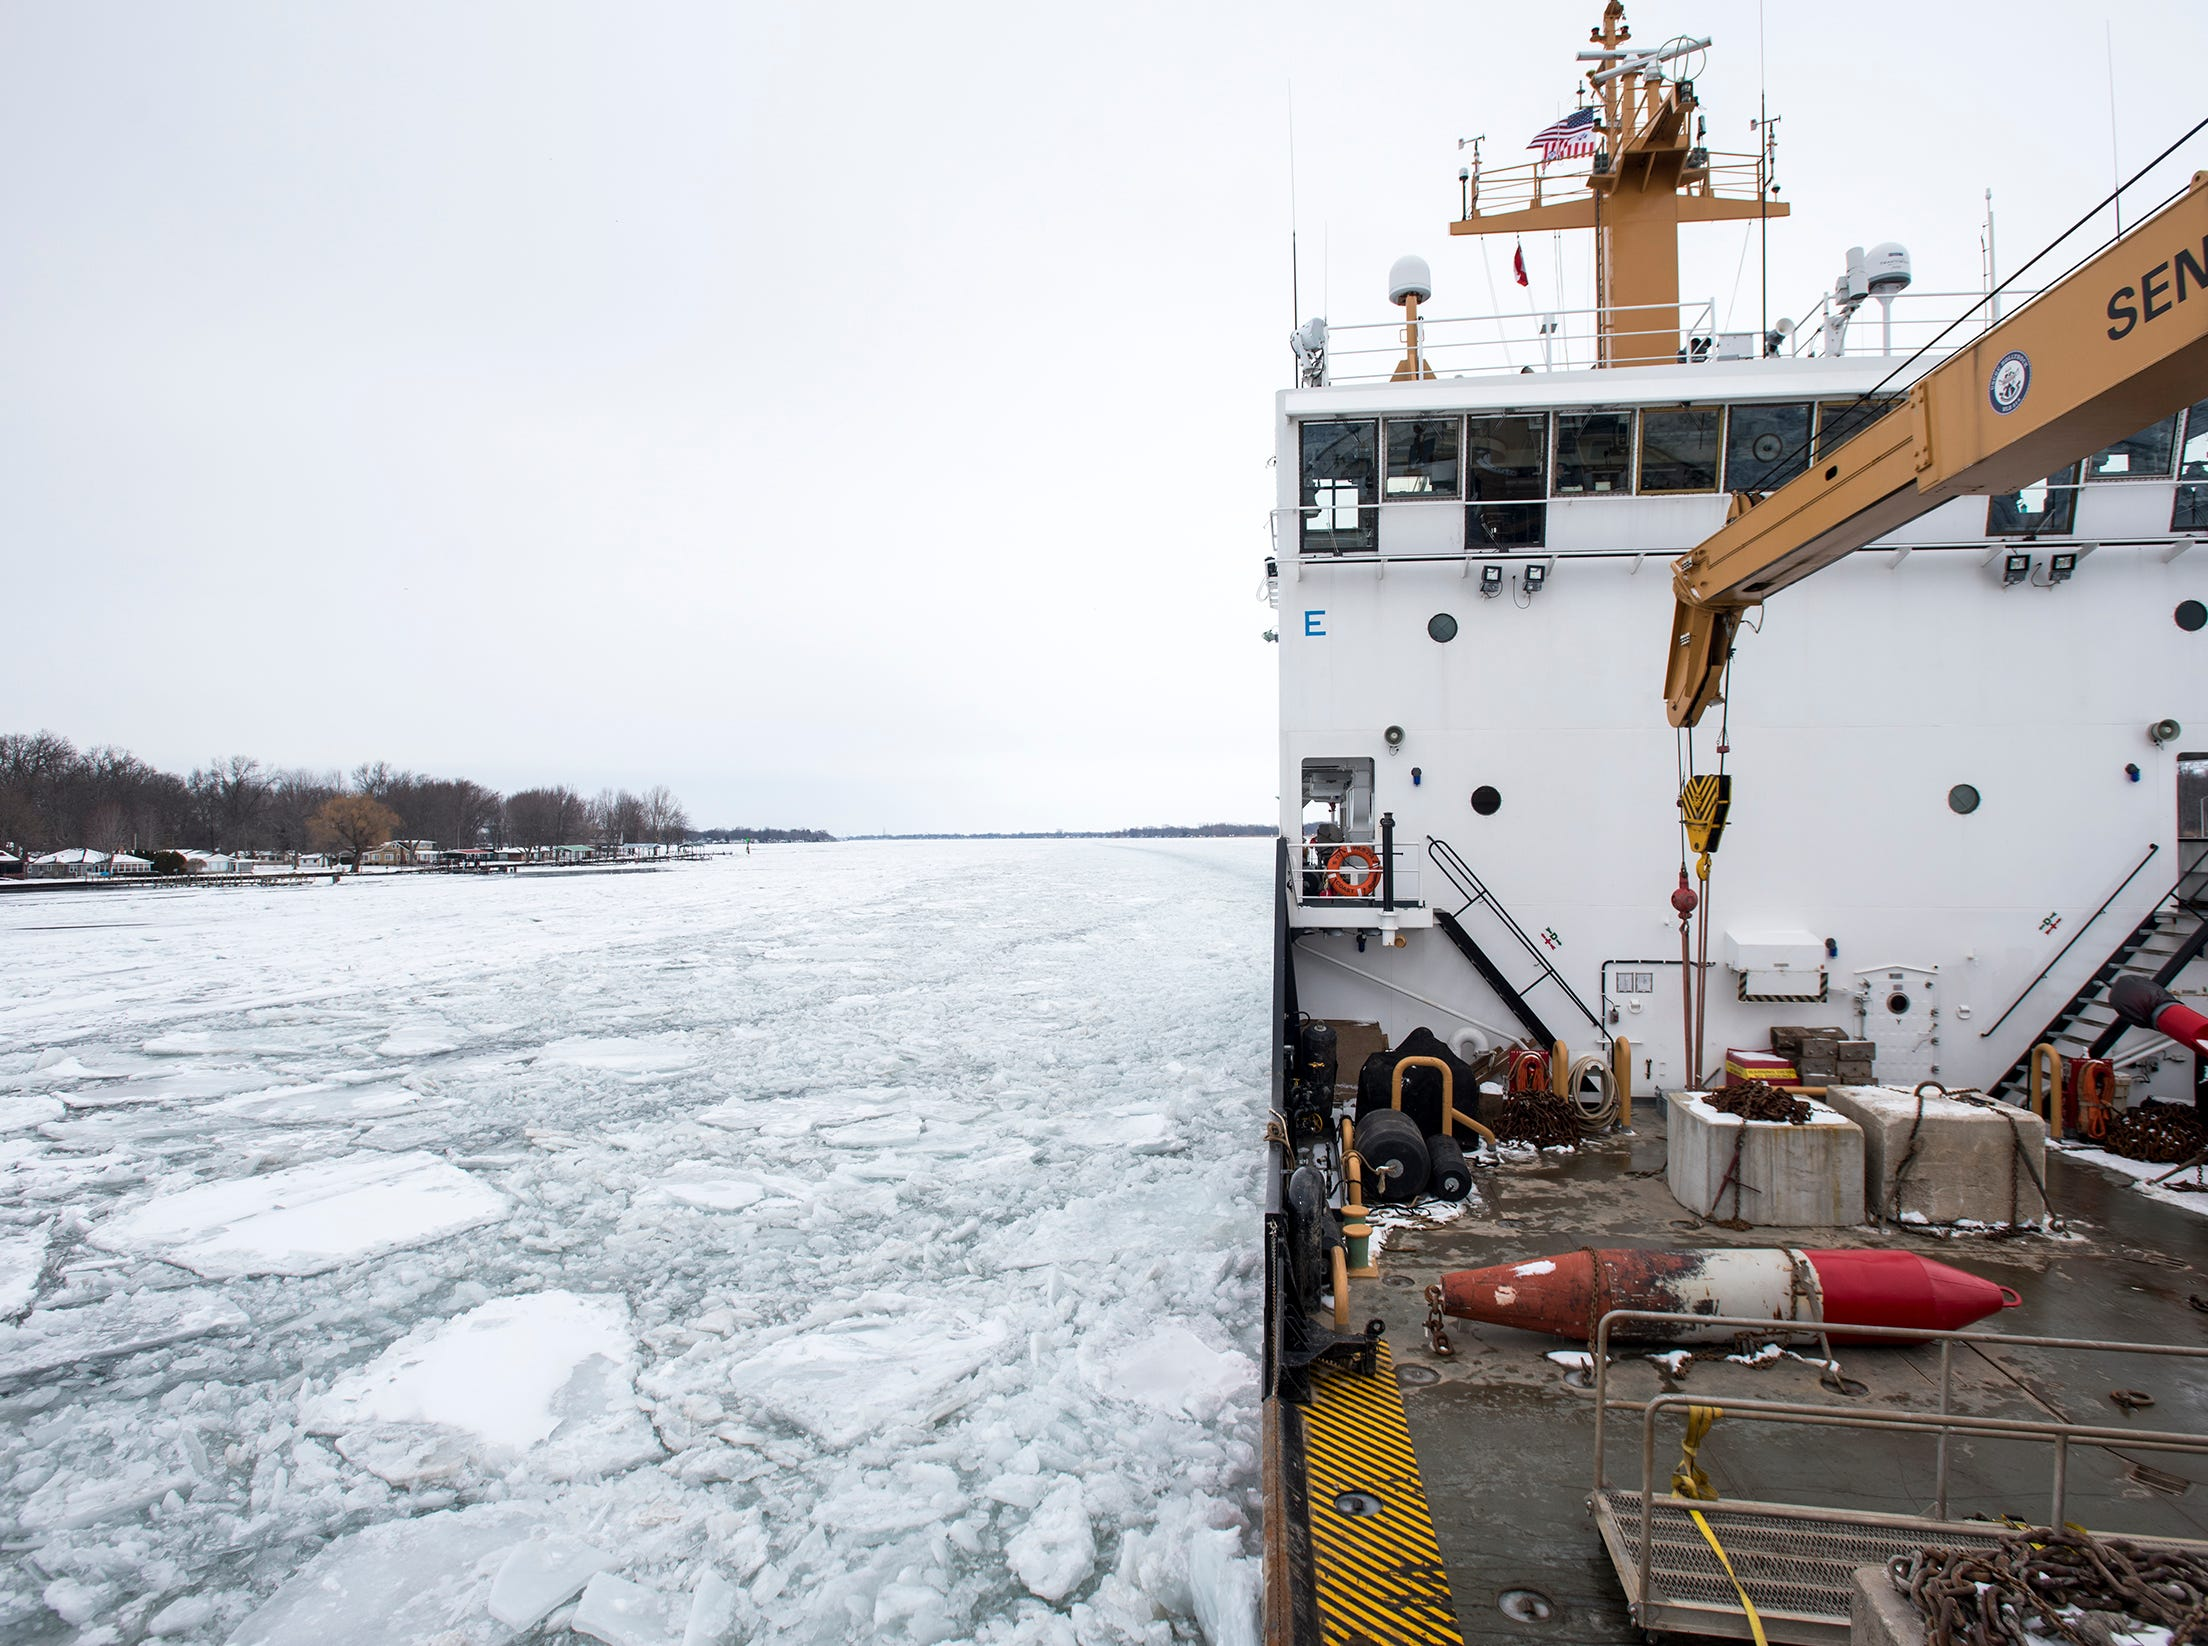 The USCGC Hollyhock pushes south past Algonac through ice on the St. Clair River Wednesday, Feb. 20, 2019. Lt. Cmdr. Nick Monacelli, commanding officer of the Hollyhock, said its been a tough year for icebreaking.